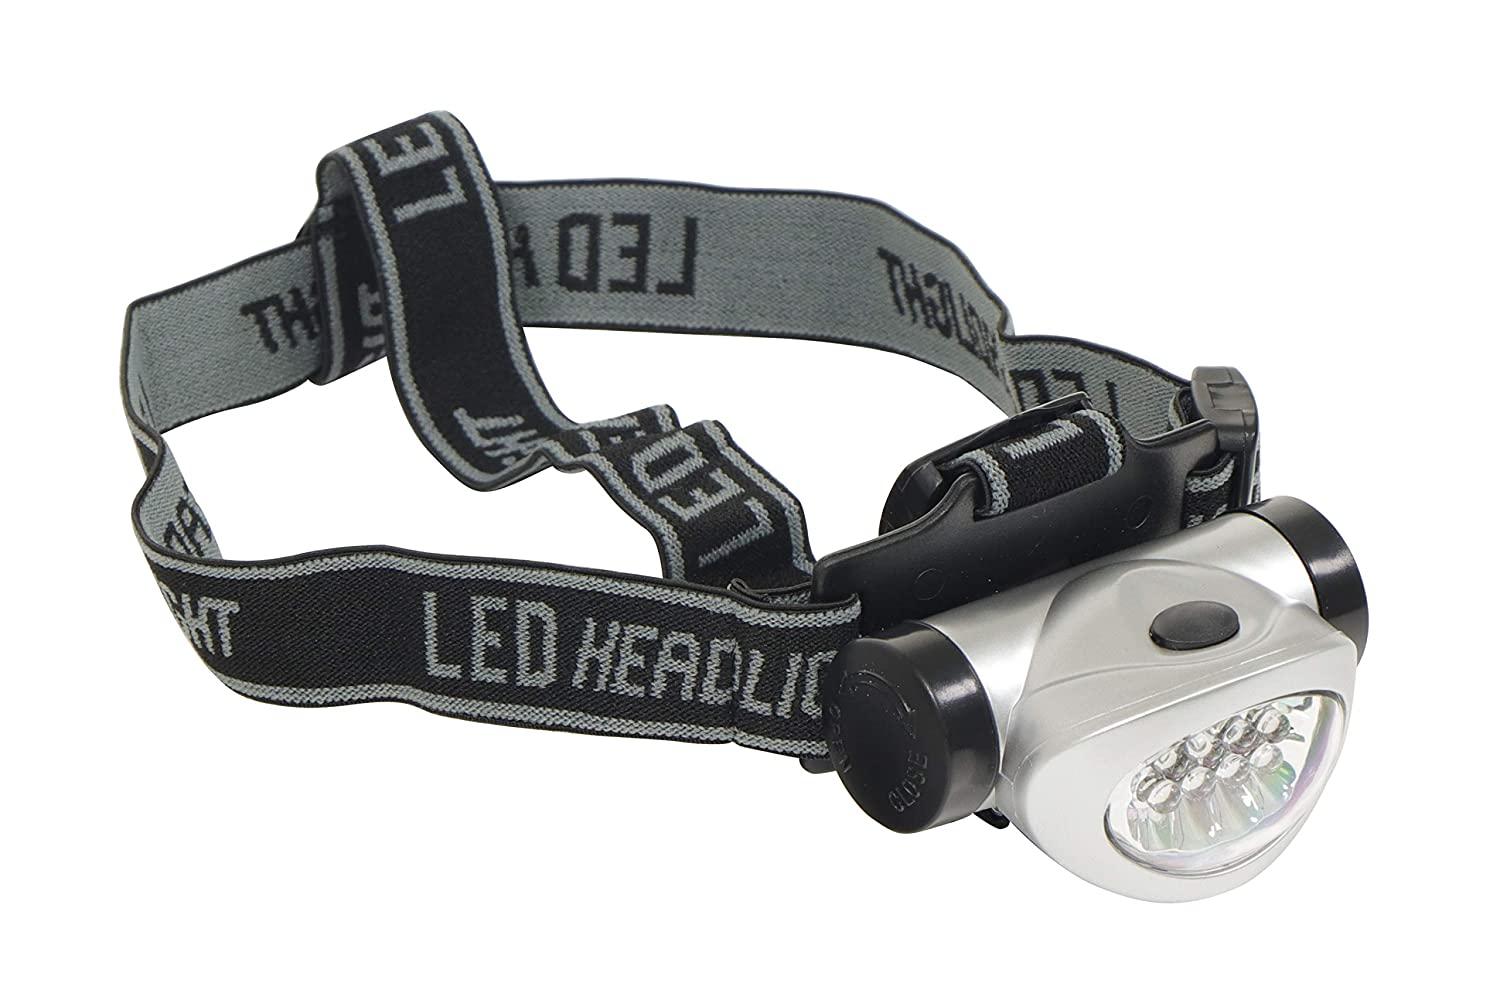 SWLR12 8 LED Head Lamp Torch Light Water Resistant